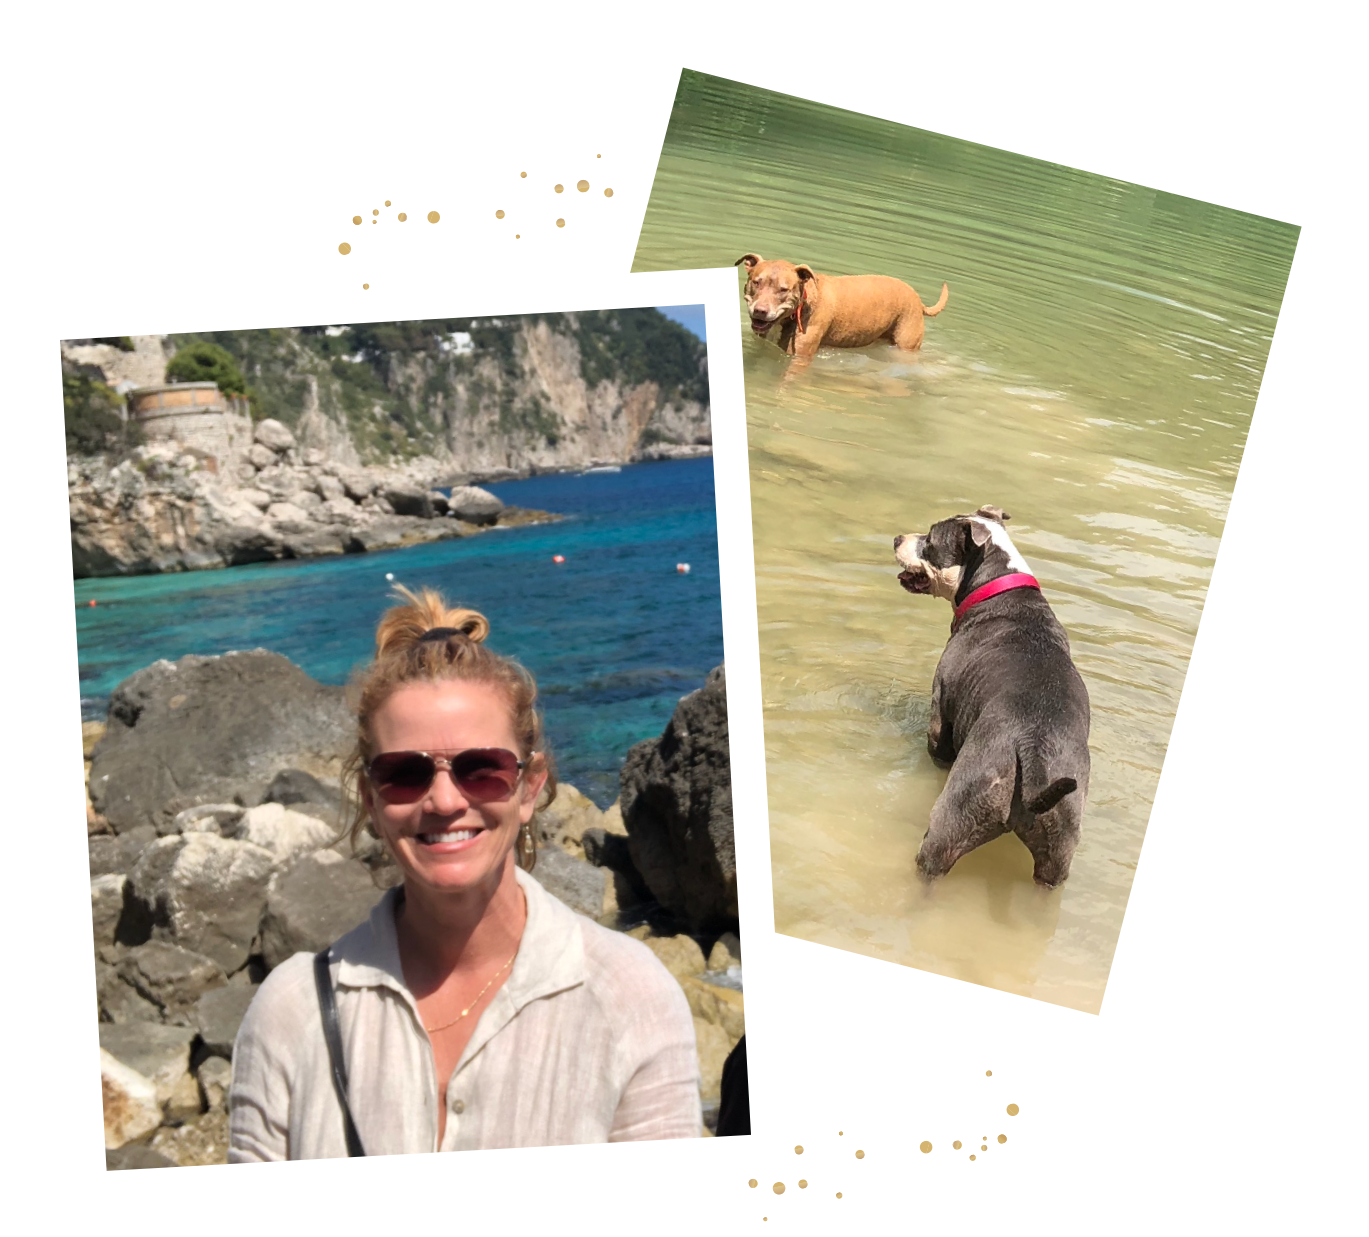 Ciao! - I'm Susan (or Susana here in Italy), an adventurous expat from California who always had a love for Italy. After 30 years of dreaming, I quit my corporate job and workaholic lifestyle to move to Southern Italy and start a new life. With my two dogs, Mack and Sweetie Pie, I moved to a traditional, Southern Italian village in the Campania region.